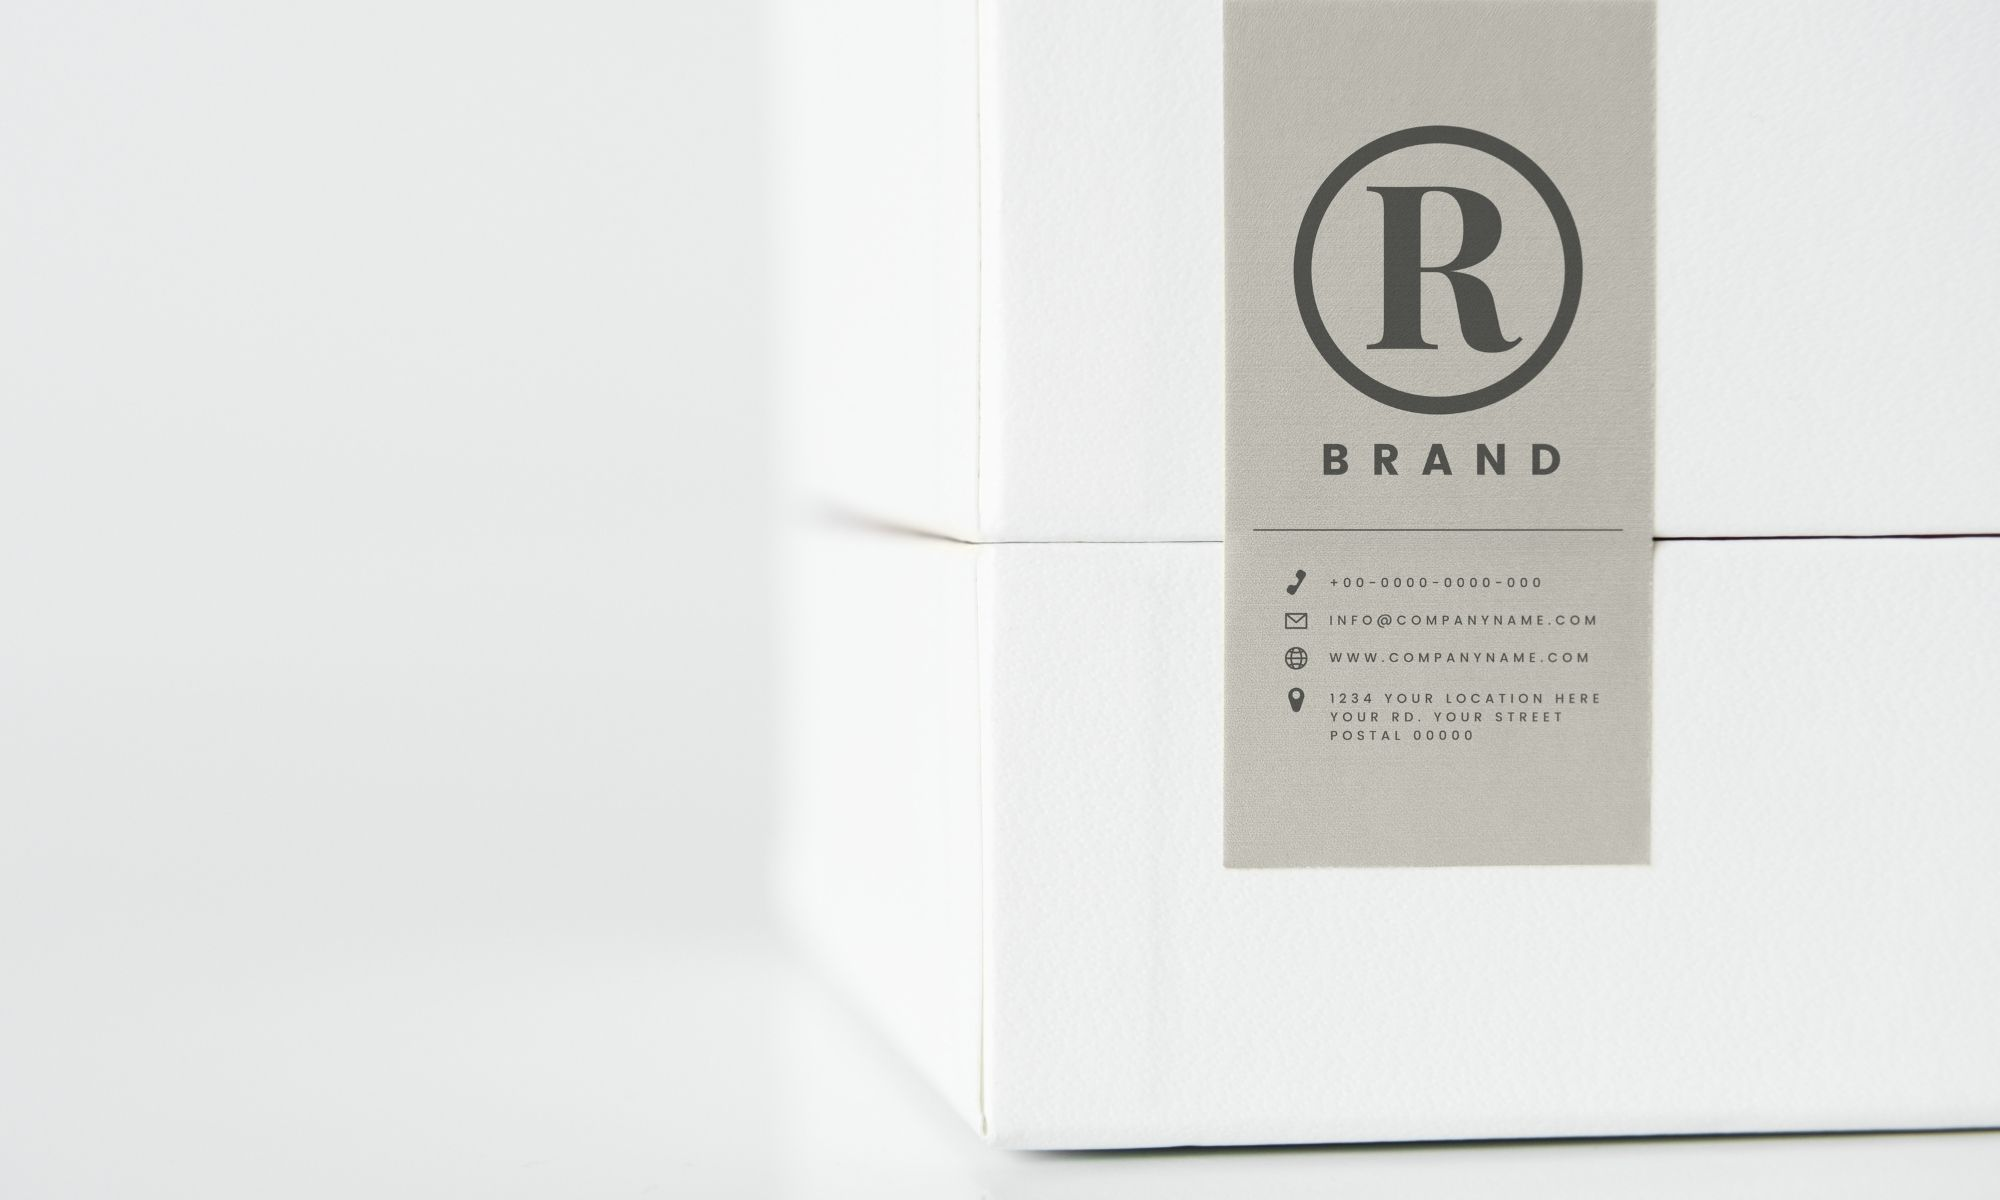 6 Tips for Using Stickers and Labels for Branding